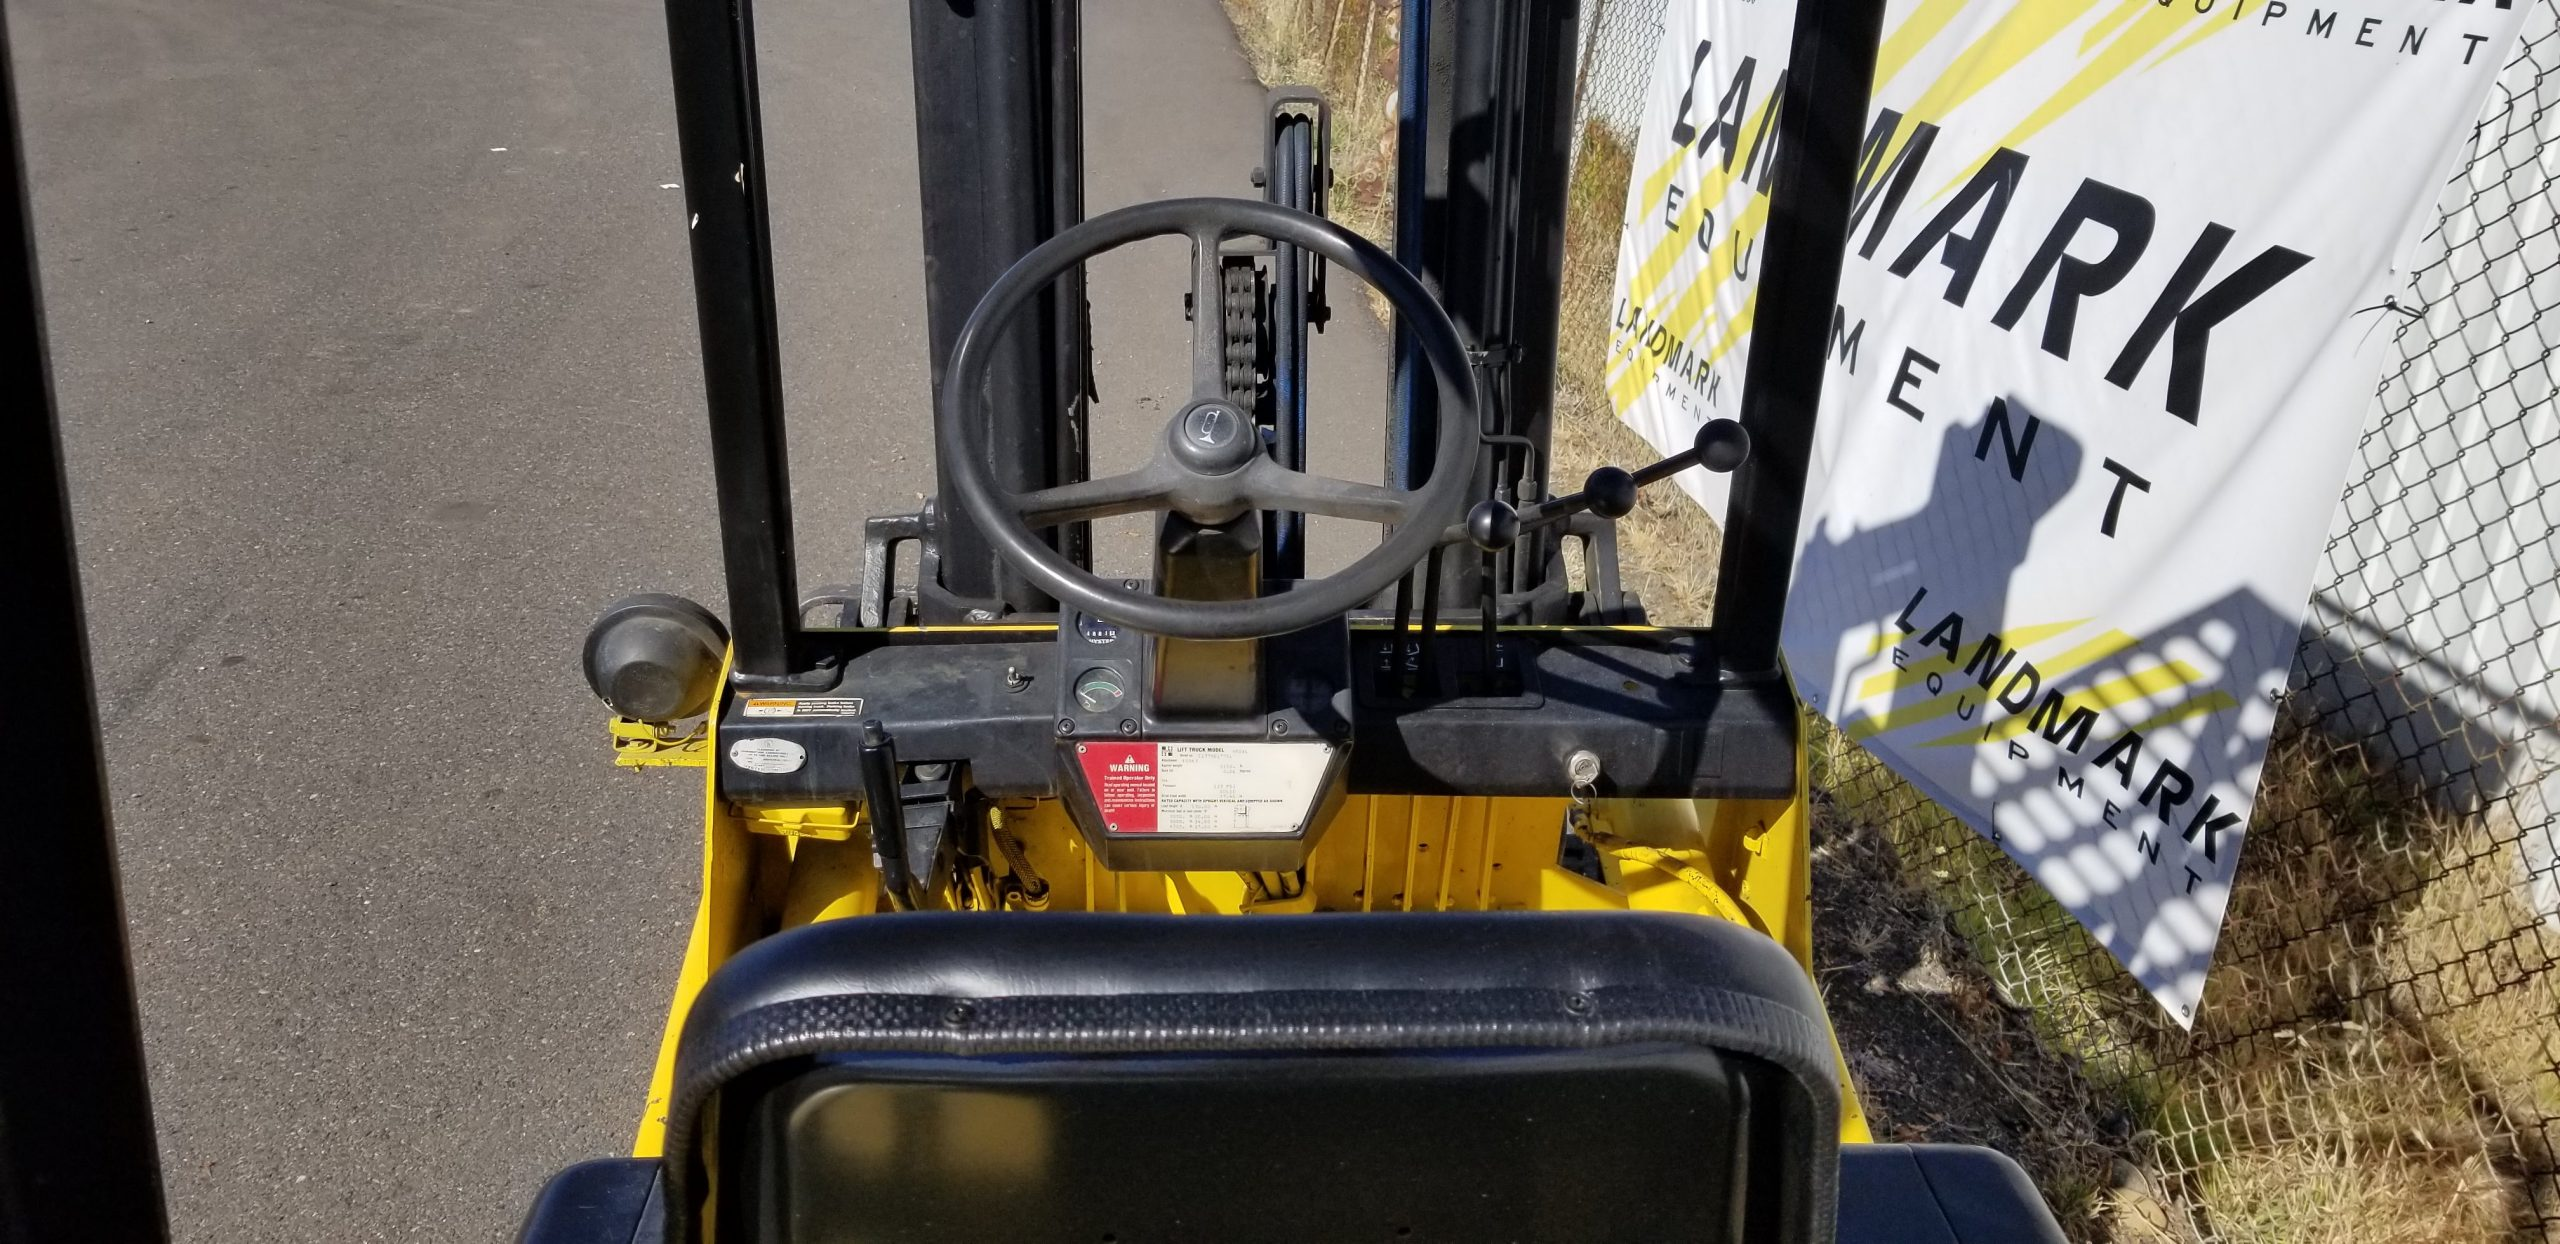 1990 Hyster H50XL For Sale 20210924_151404-scaled